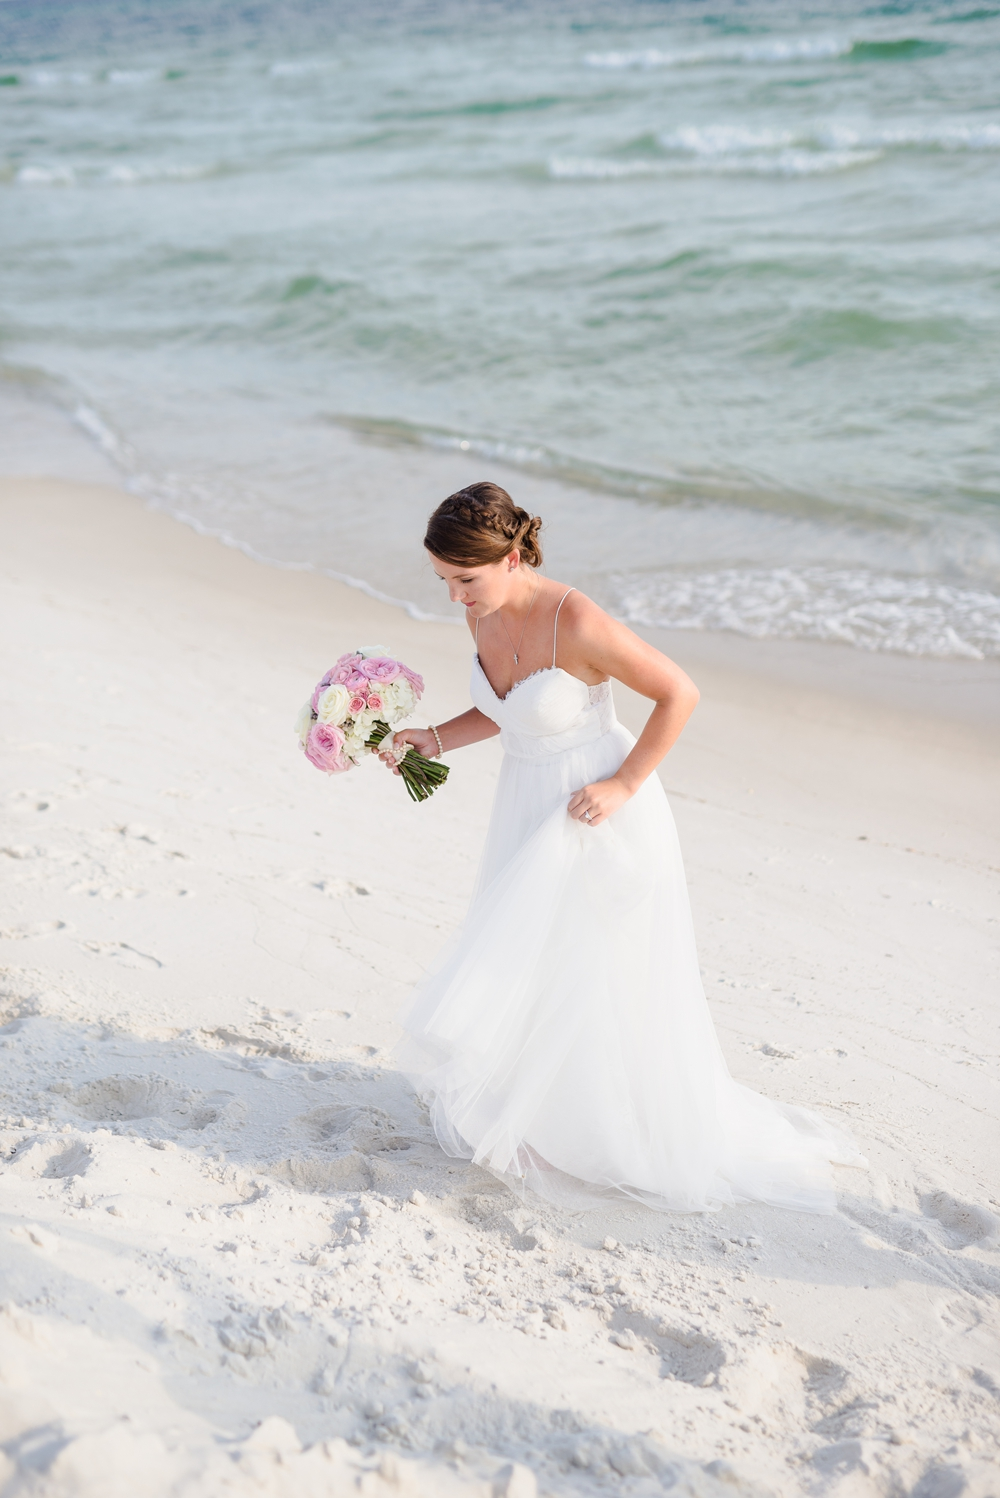 florida-wedding-photographer-kiersten-grant-99.jpg